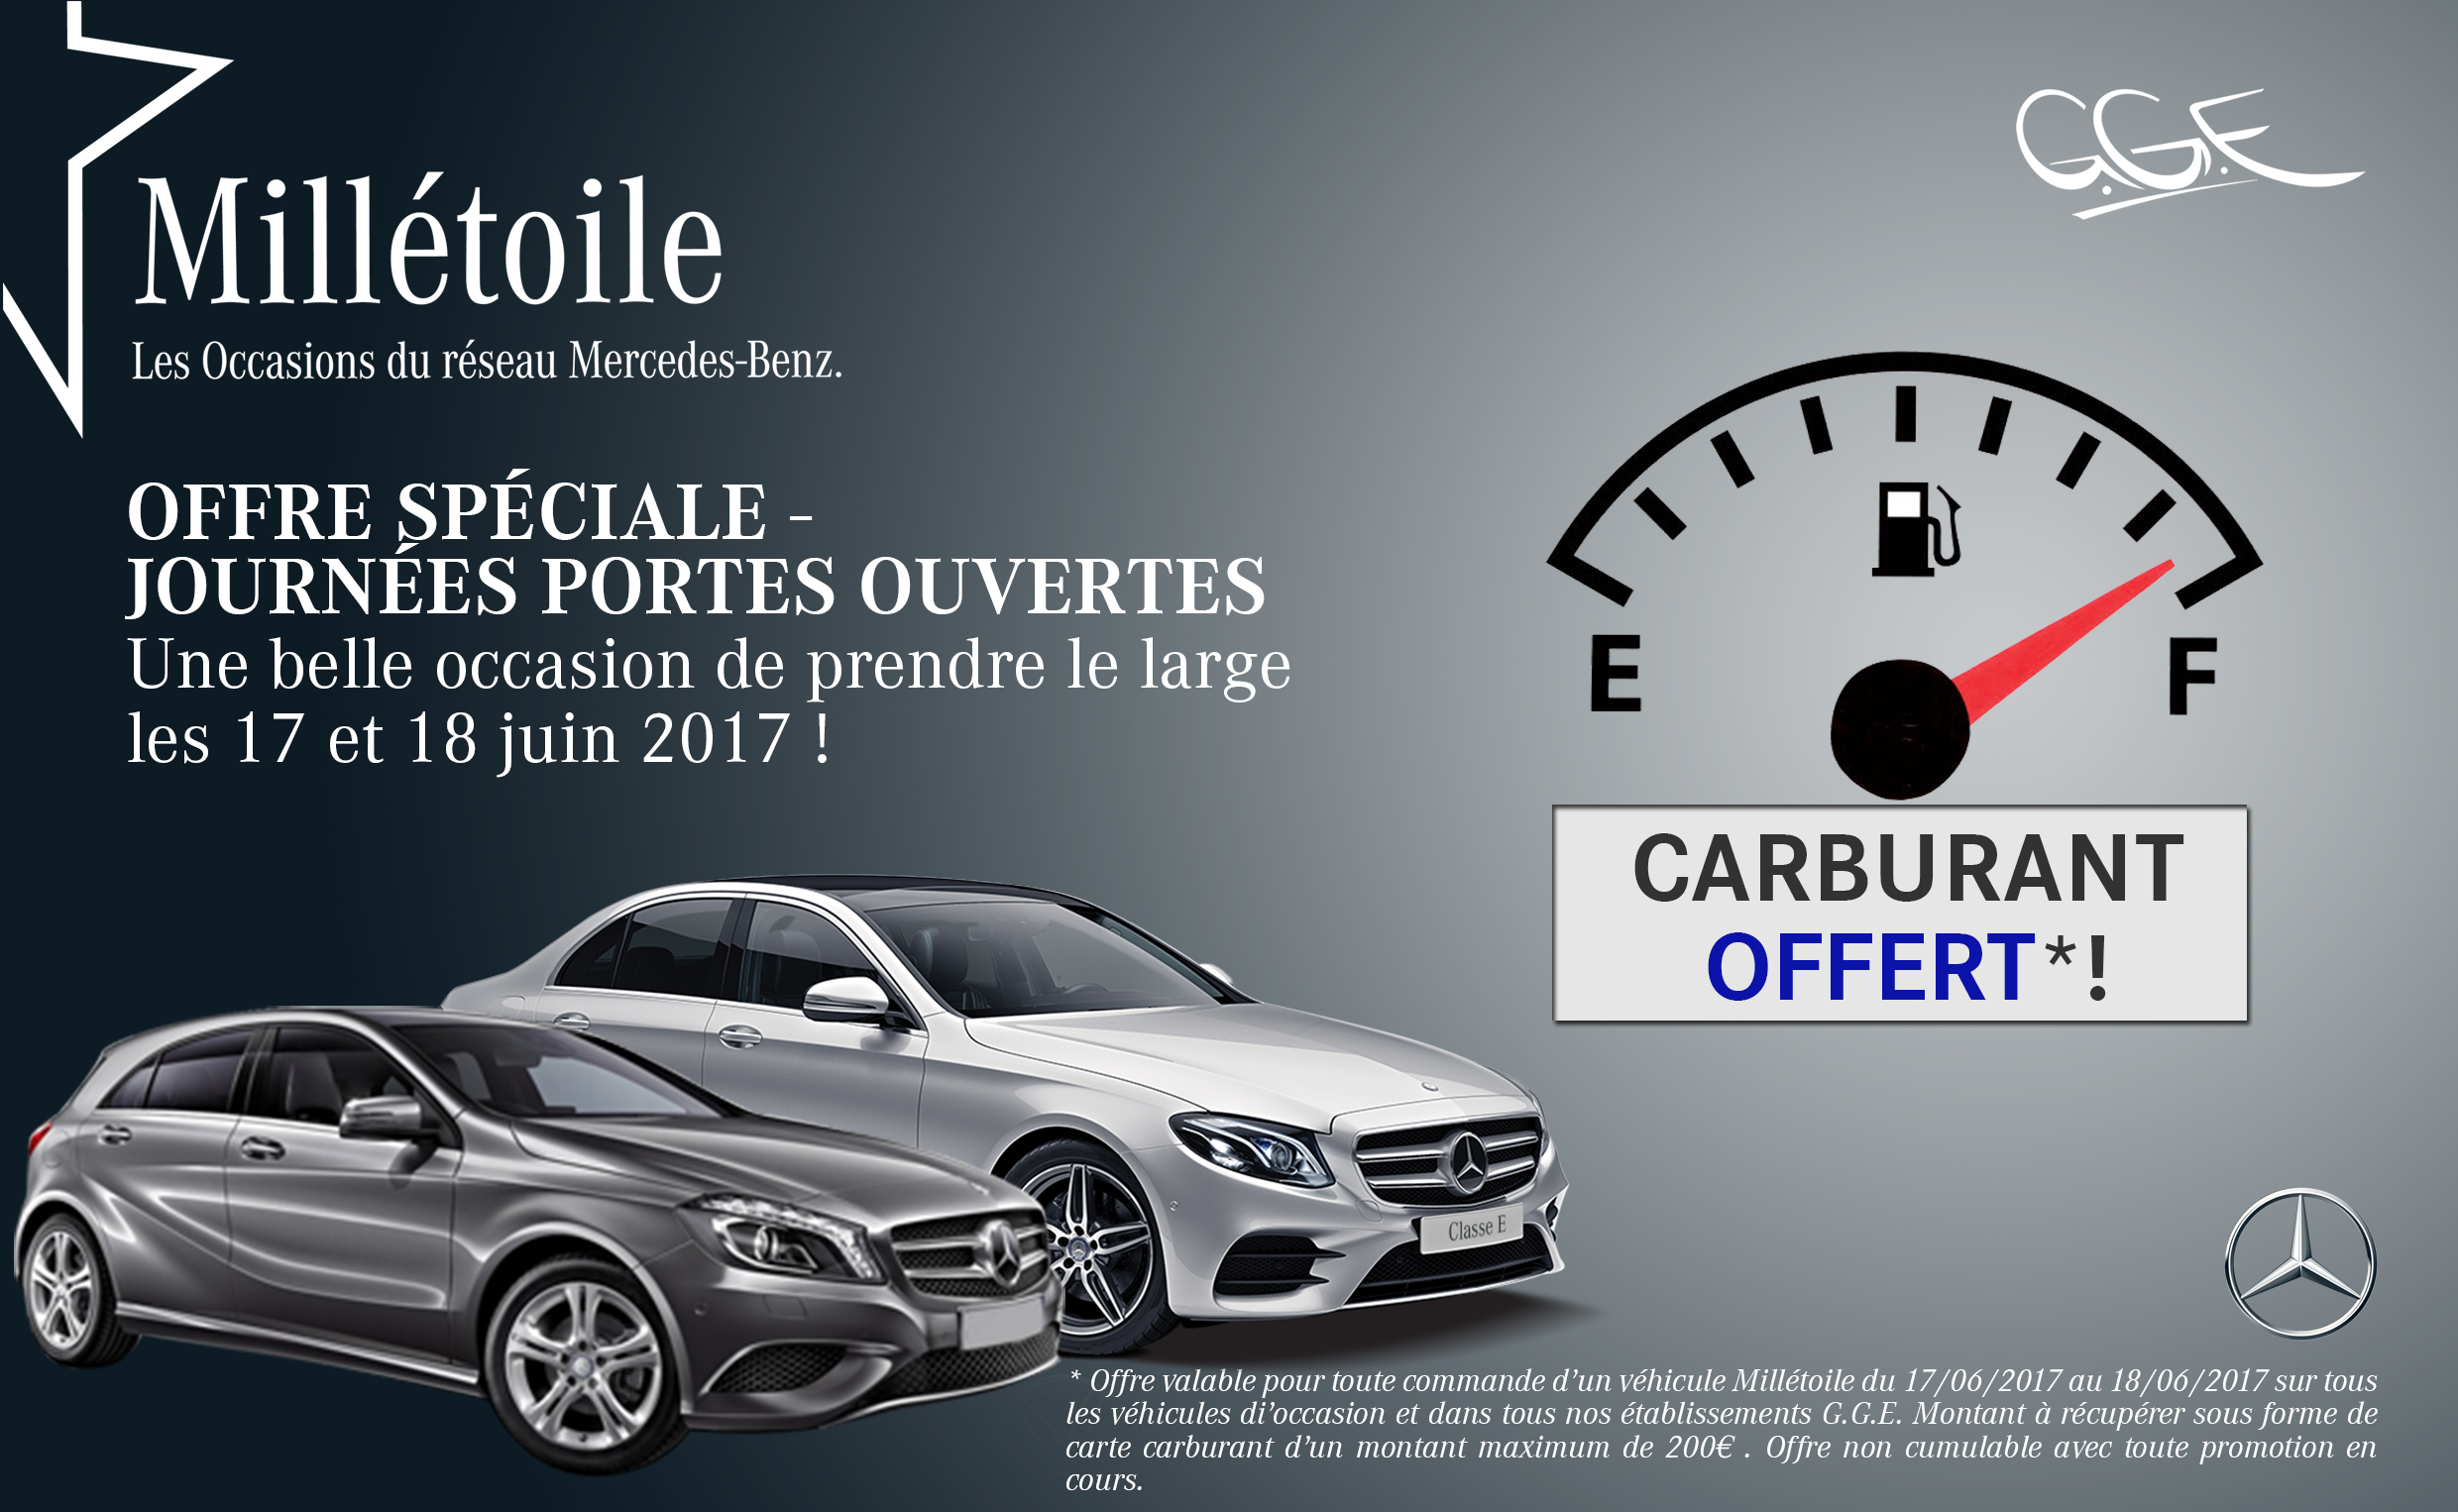 promo voiture d 39 occasion viry chatillon gge mercedes smart viry chatillon. Black Bedroom Furniture Sets. Home Design Ideas